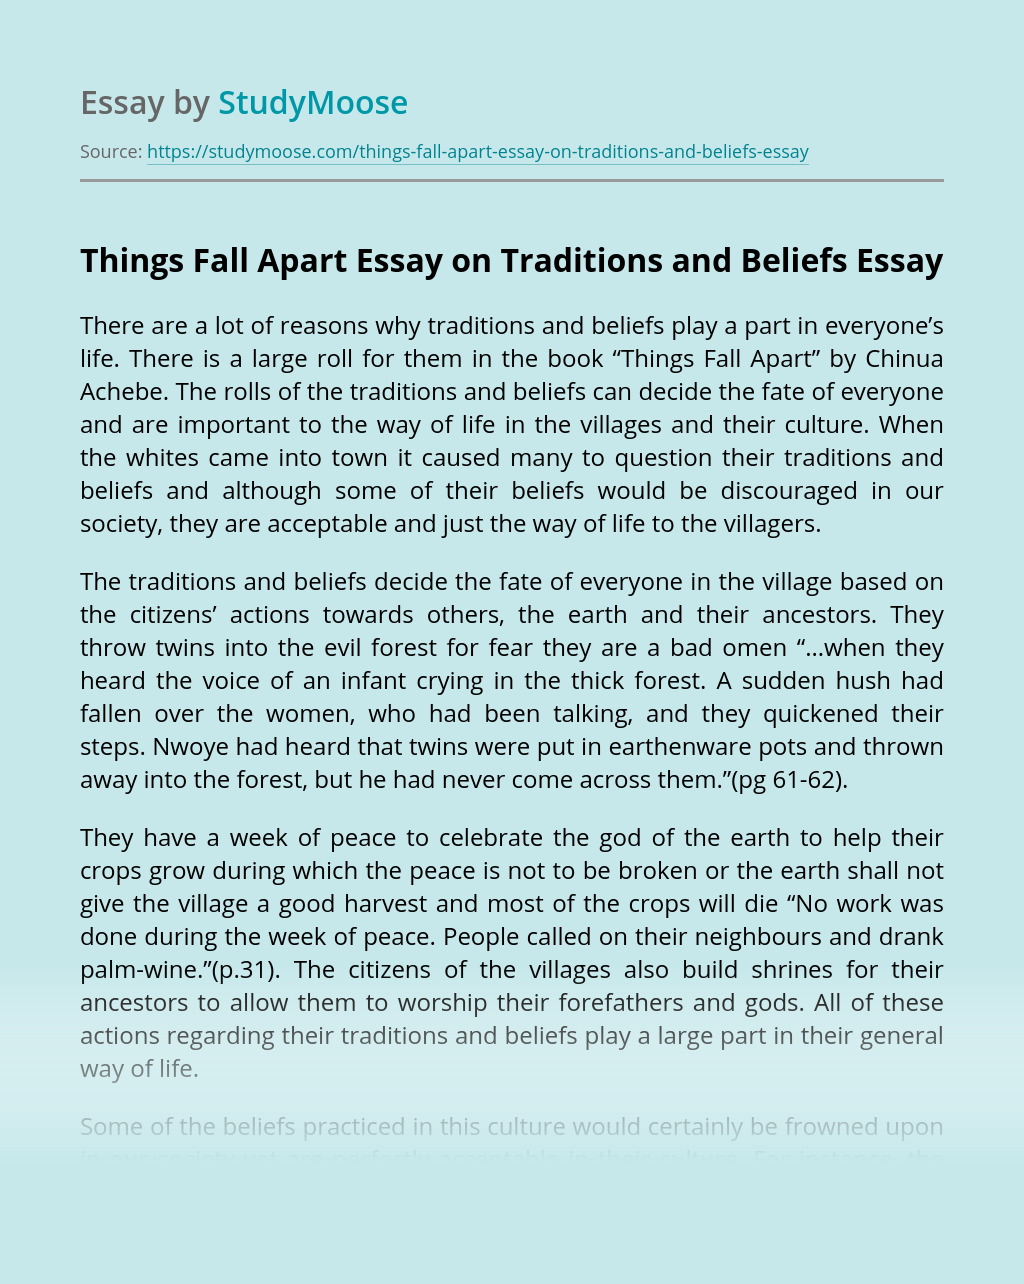 Things Fall Apart Essay on Traditions and Beliefs